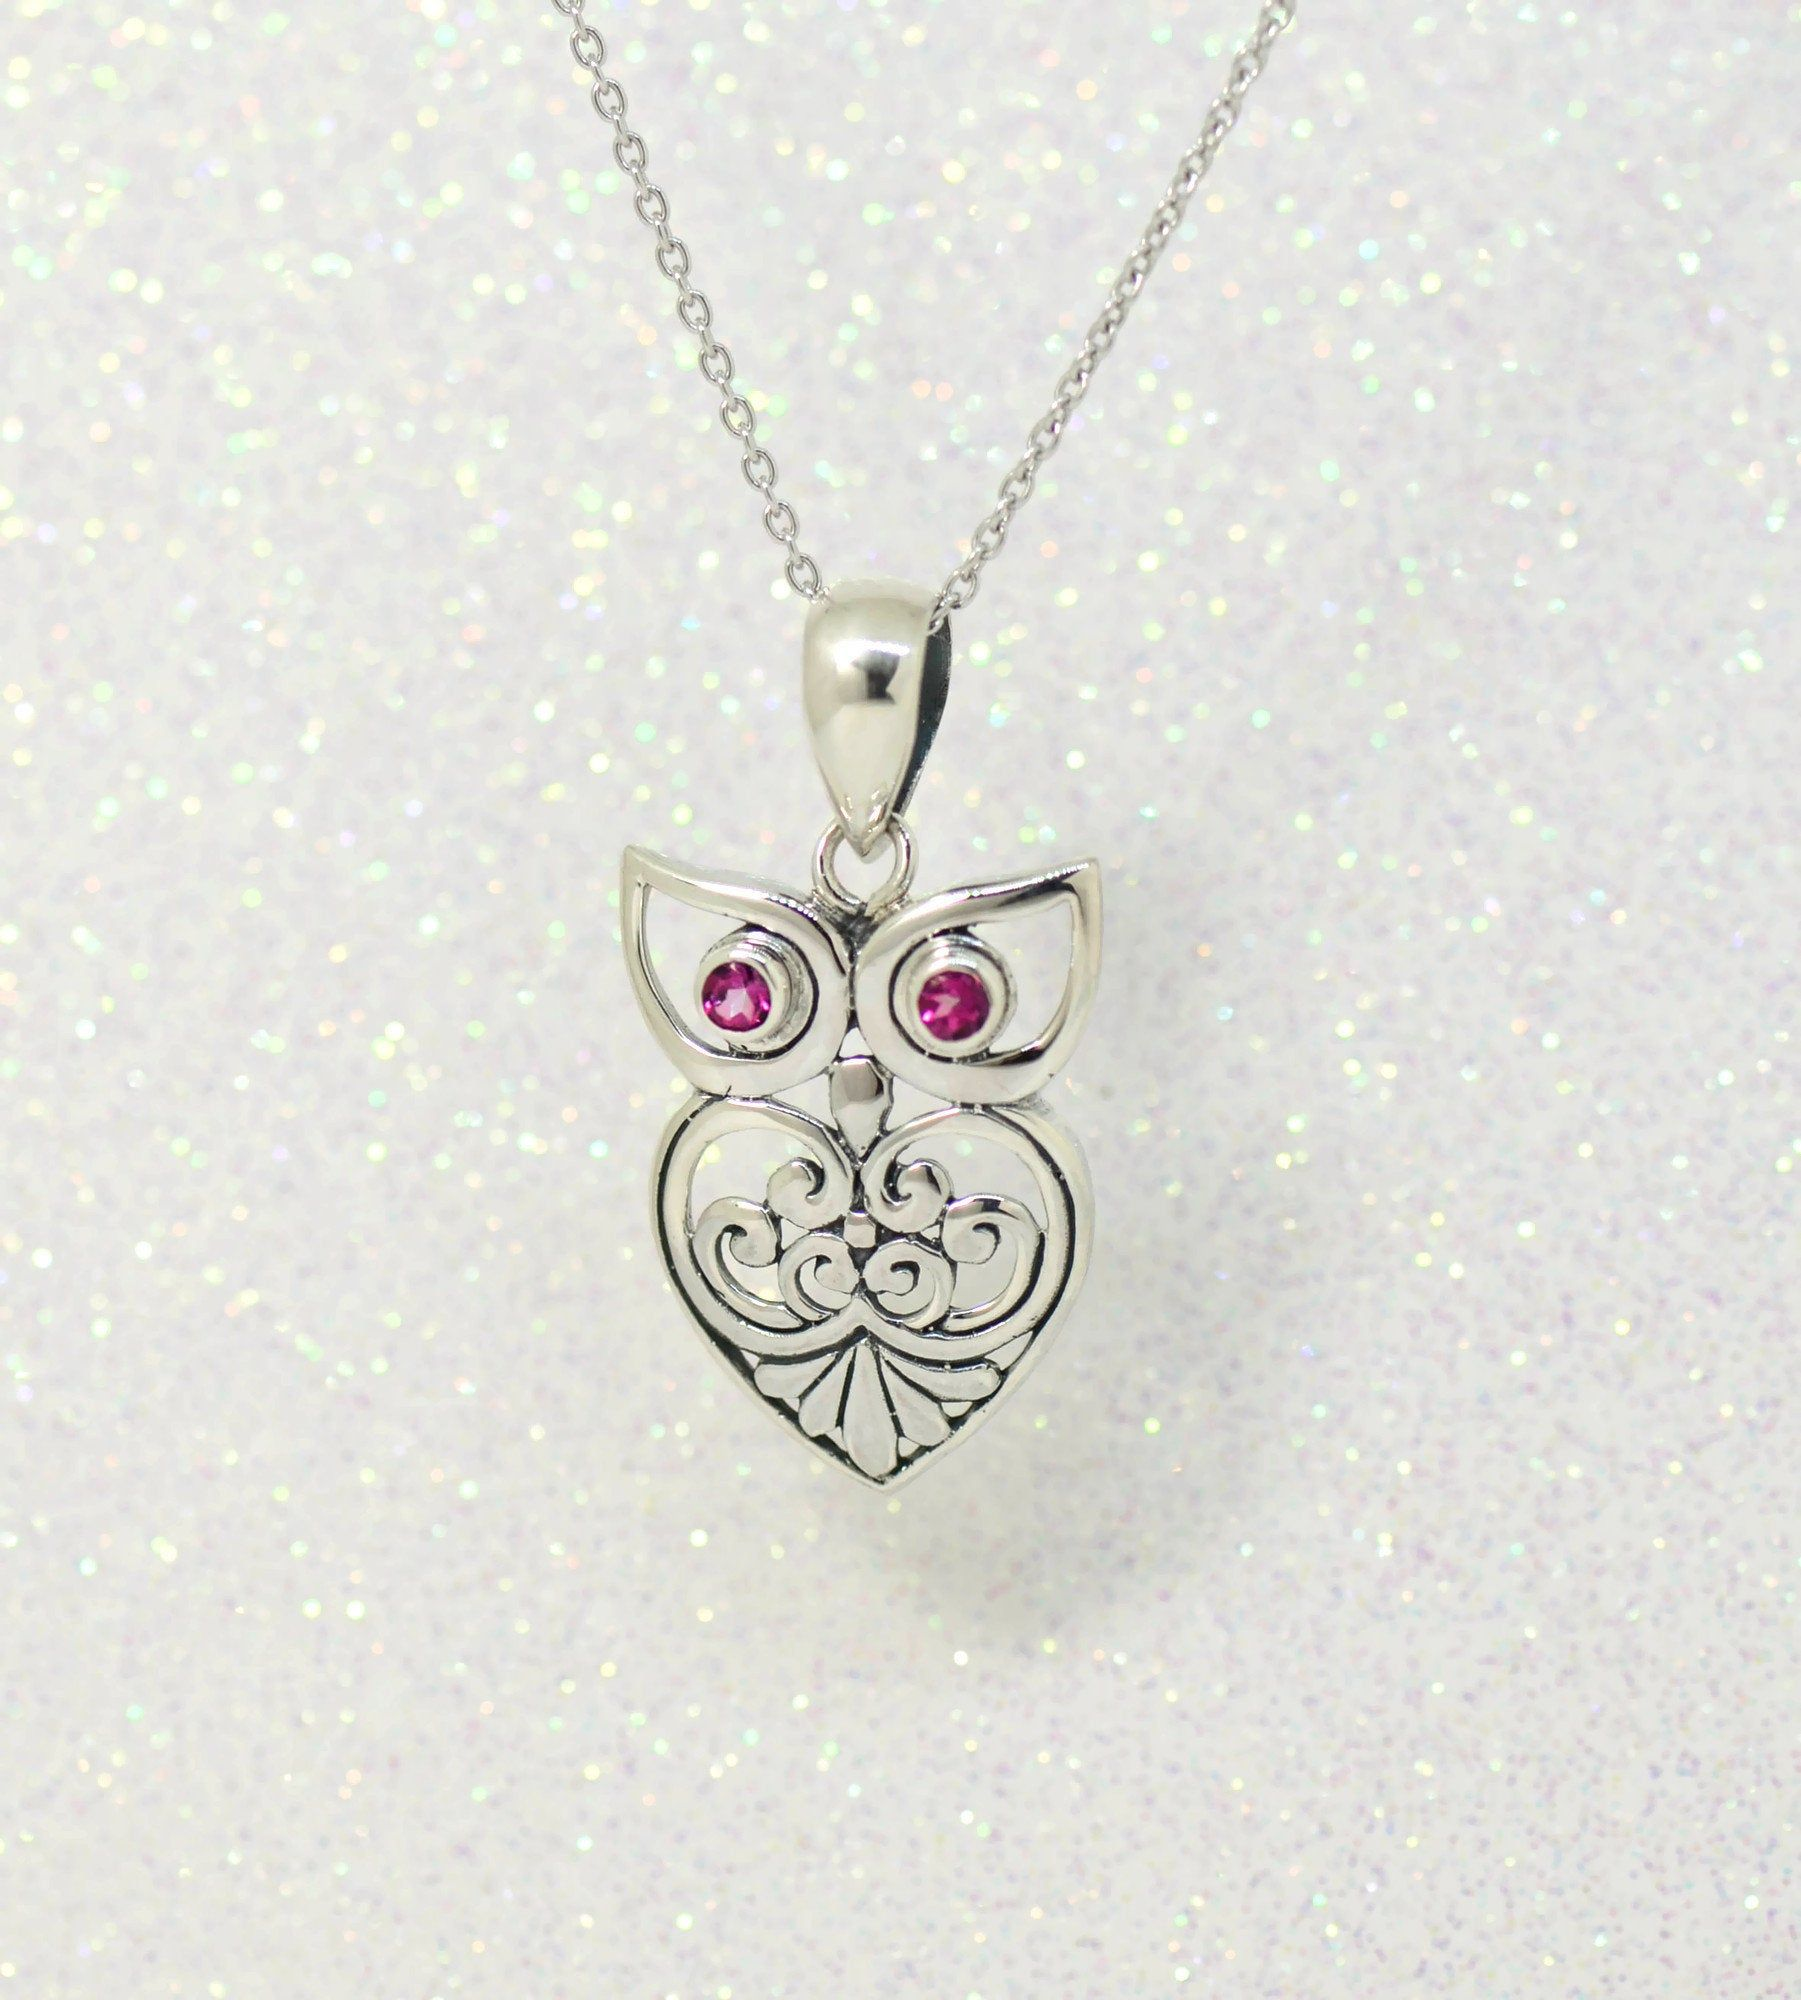 Solid 925 Sterling Silver Enameled Heart Mom with Lobster Clasp Pendant Charm 14mm x 15mm